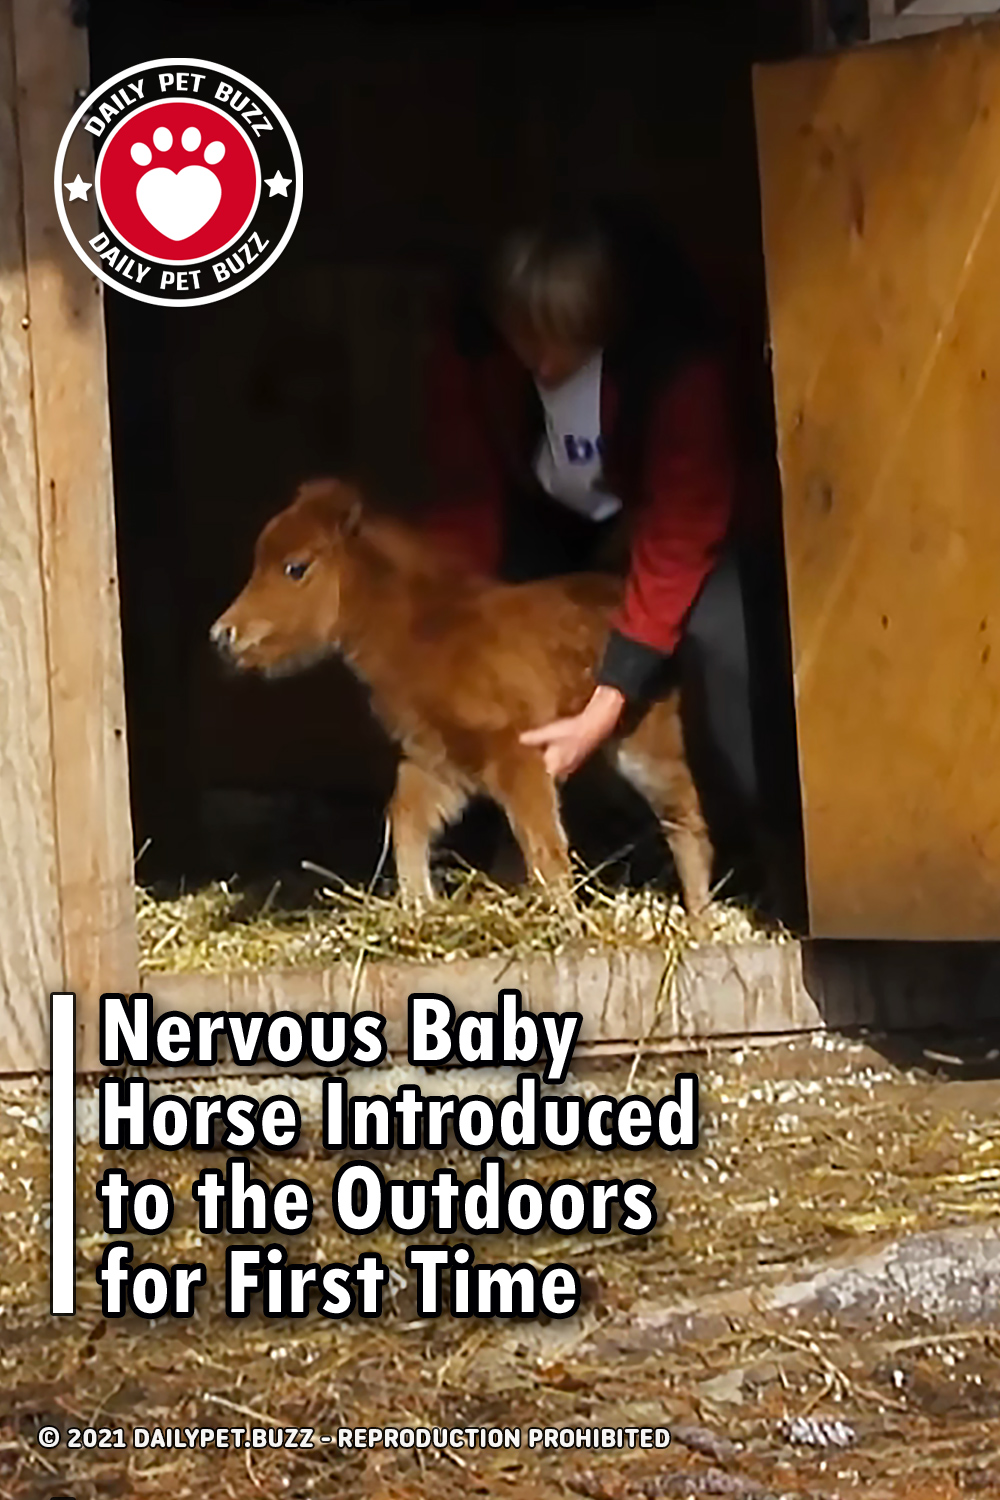 Nervous Baby Horse Introduced to the Outdoors for First Time